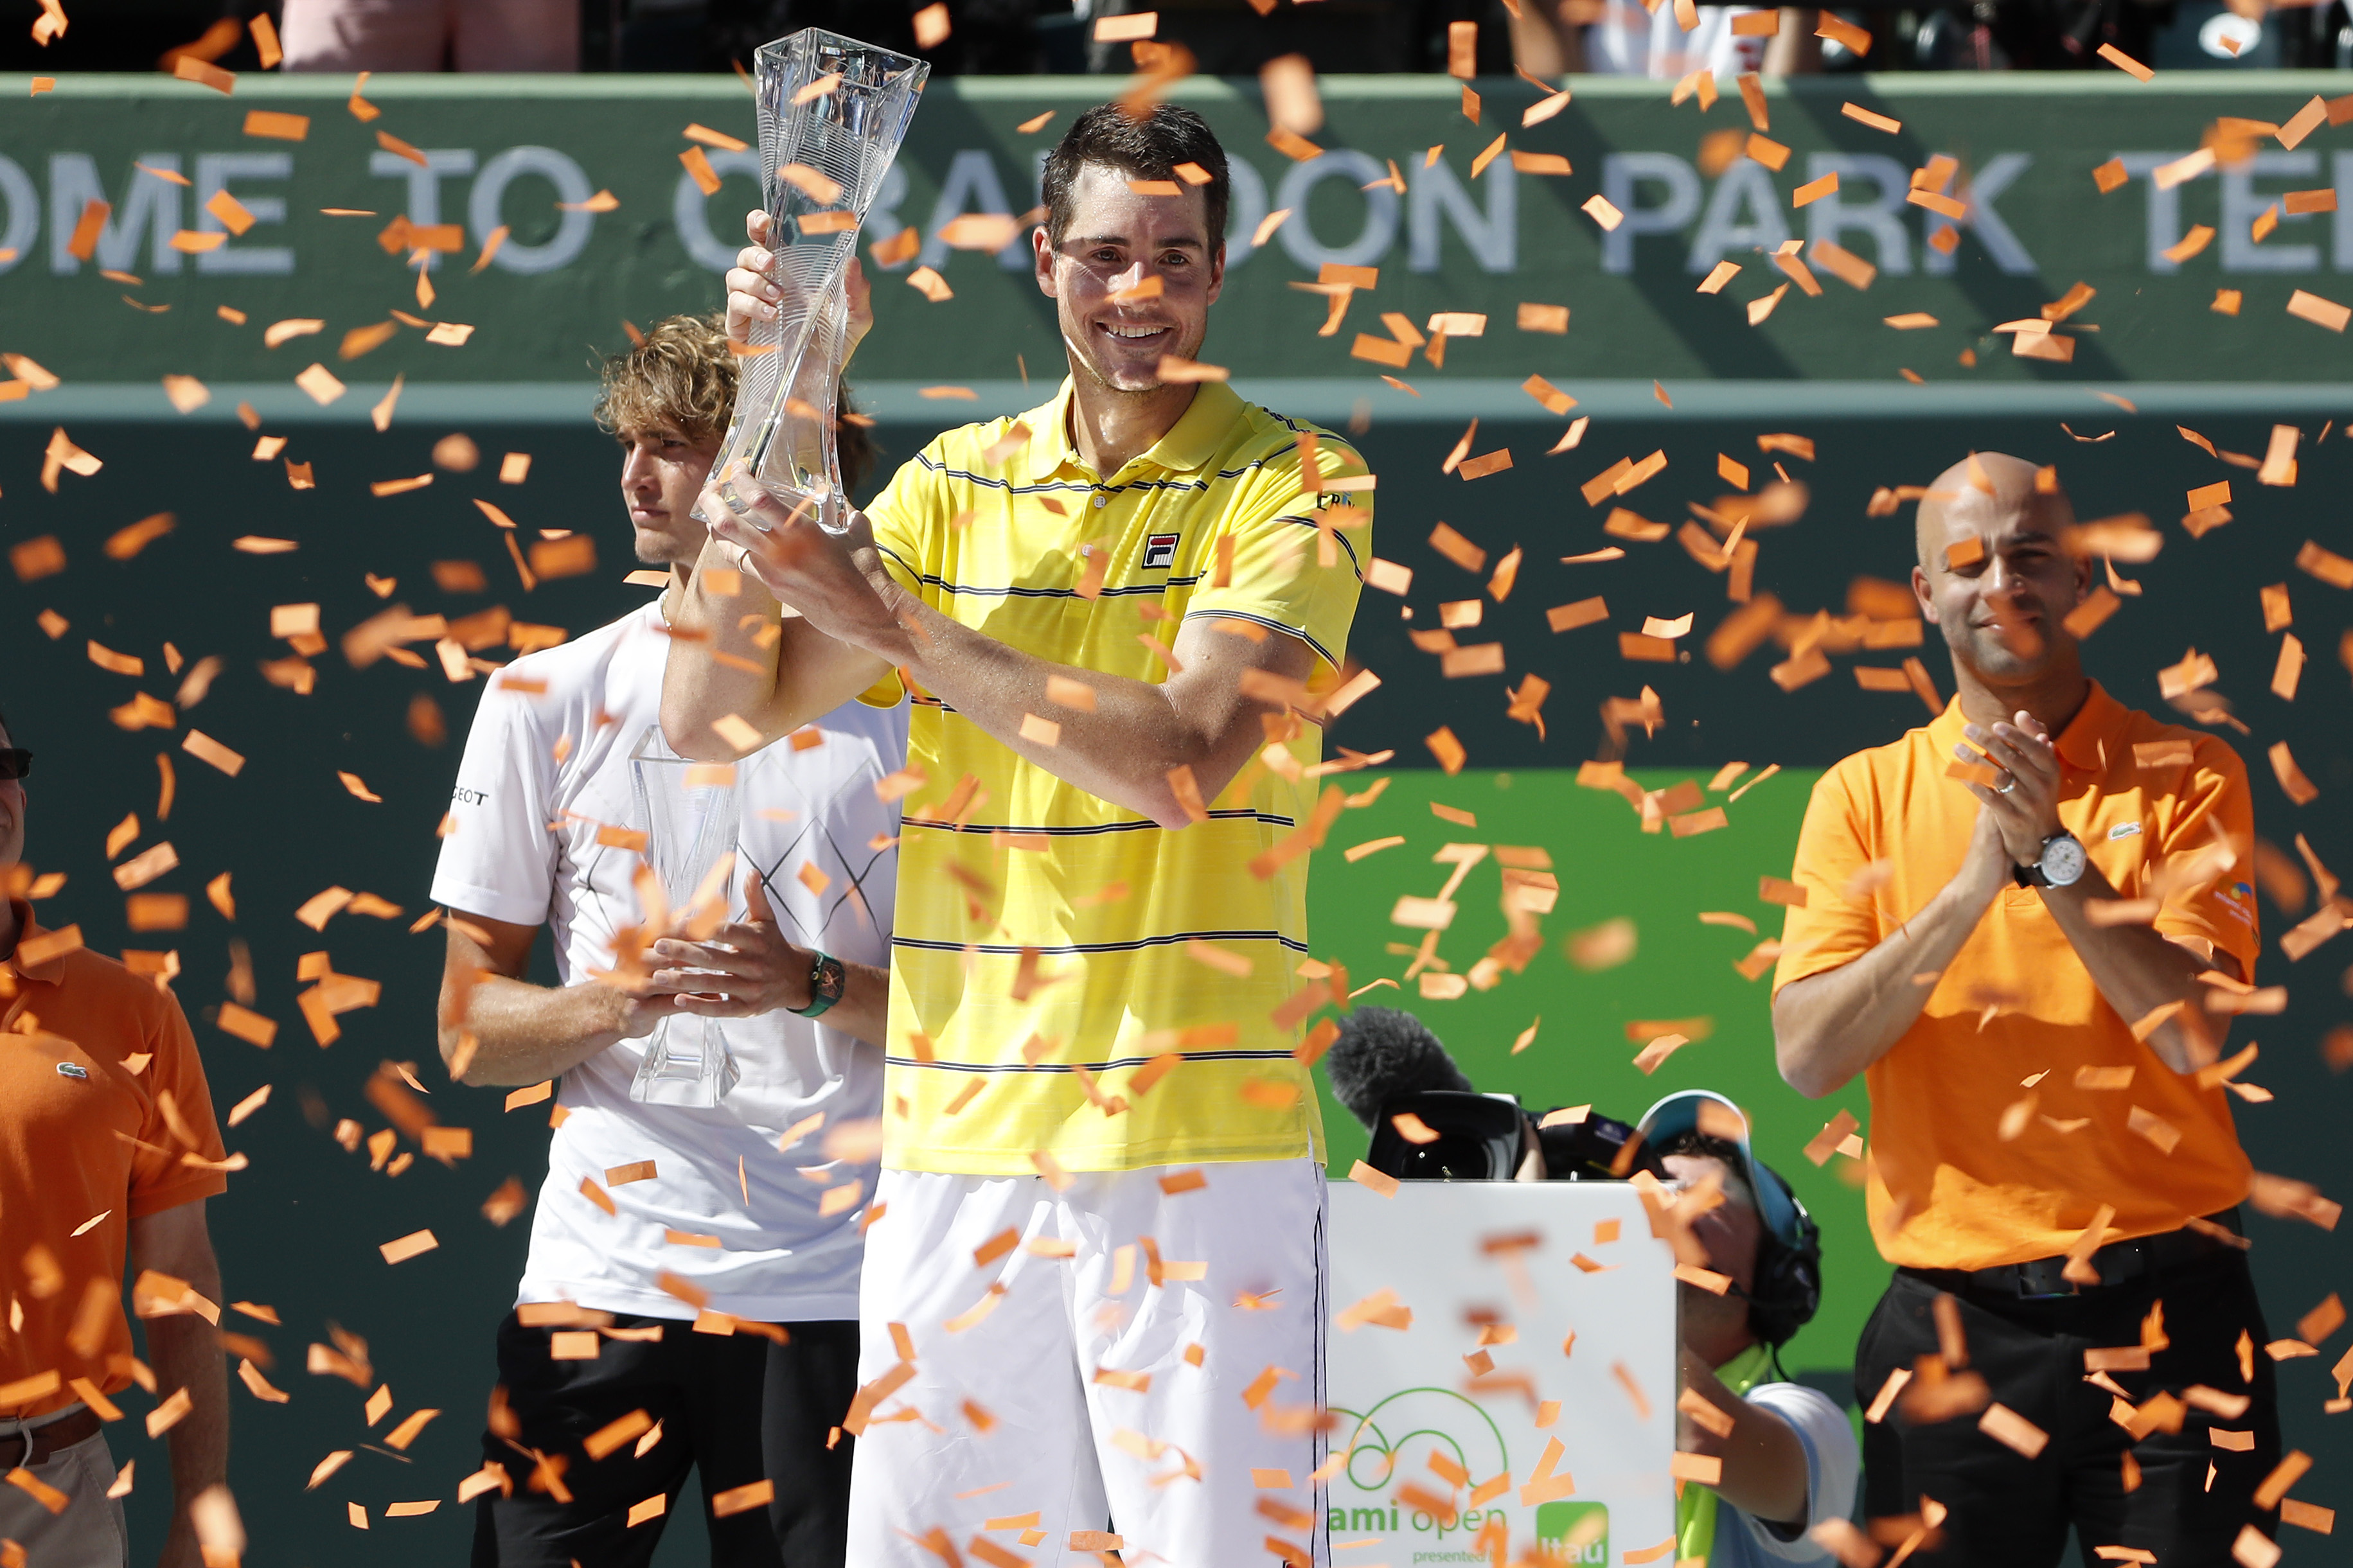 Apr 1, 2018; Key Biscayne, FL, USA; John Isner of the United States celebrates with the Butch Buchholz championship trophy after his match against Alexander Zverev of Germany (L) in the men's singles final of the Miami Open at Tennis Center at Crandon Park. 6-7(4), 6-4, 6-4. Mandatory Credit: Geoff Burke-USA TODAY Sports